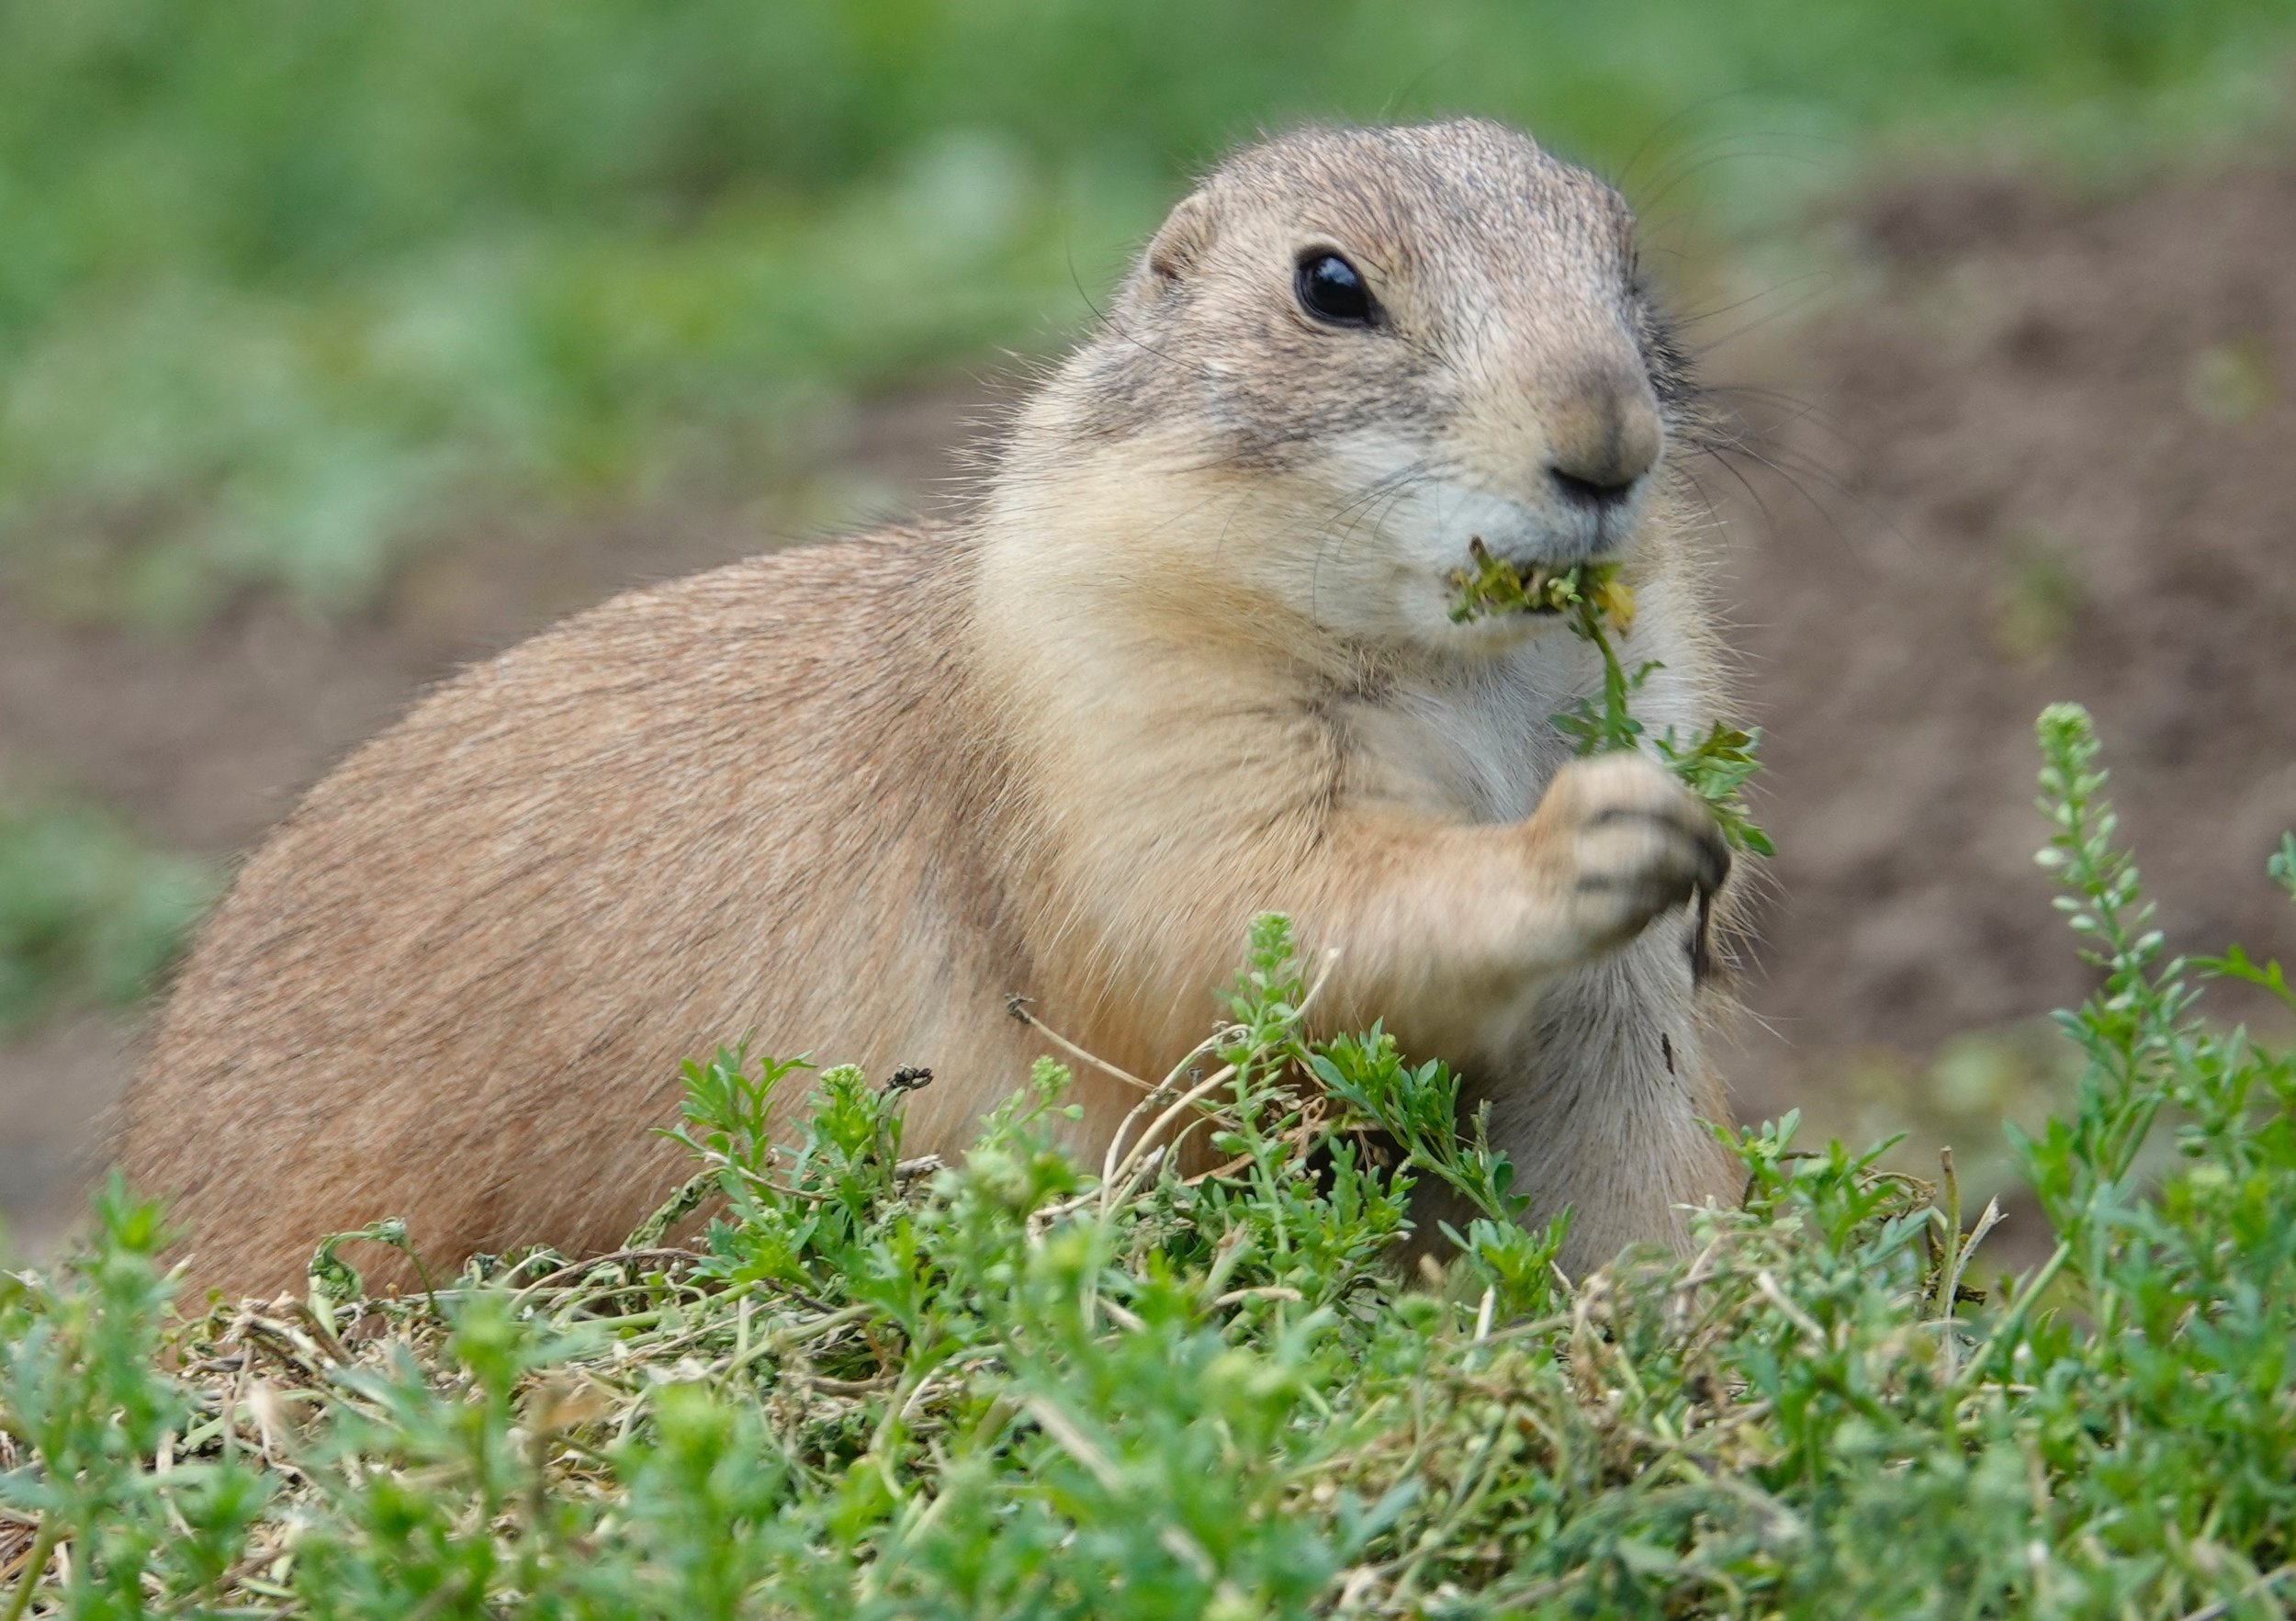 A prairie dog believes in stopping to eat the flowers.